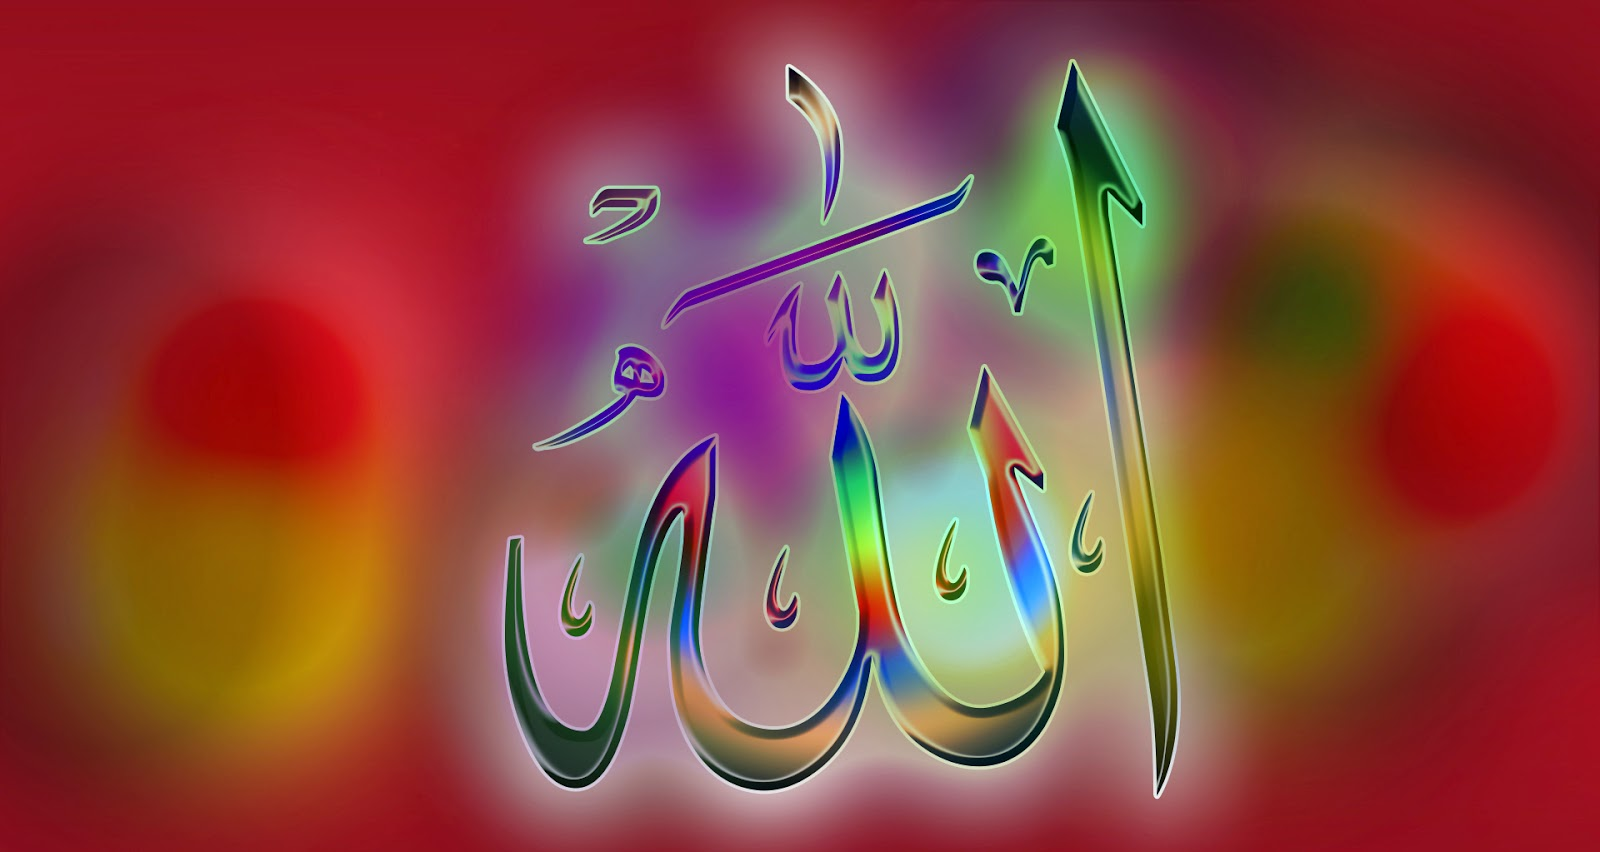 Name Of Allah Wallpapers Allah Hd Wallpapers Download | Auto Design Tech